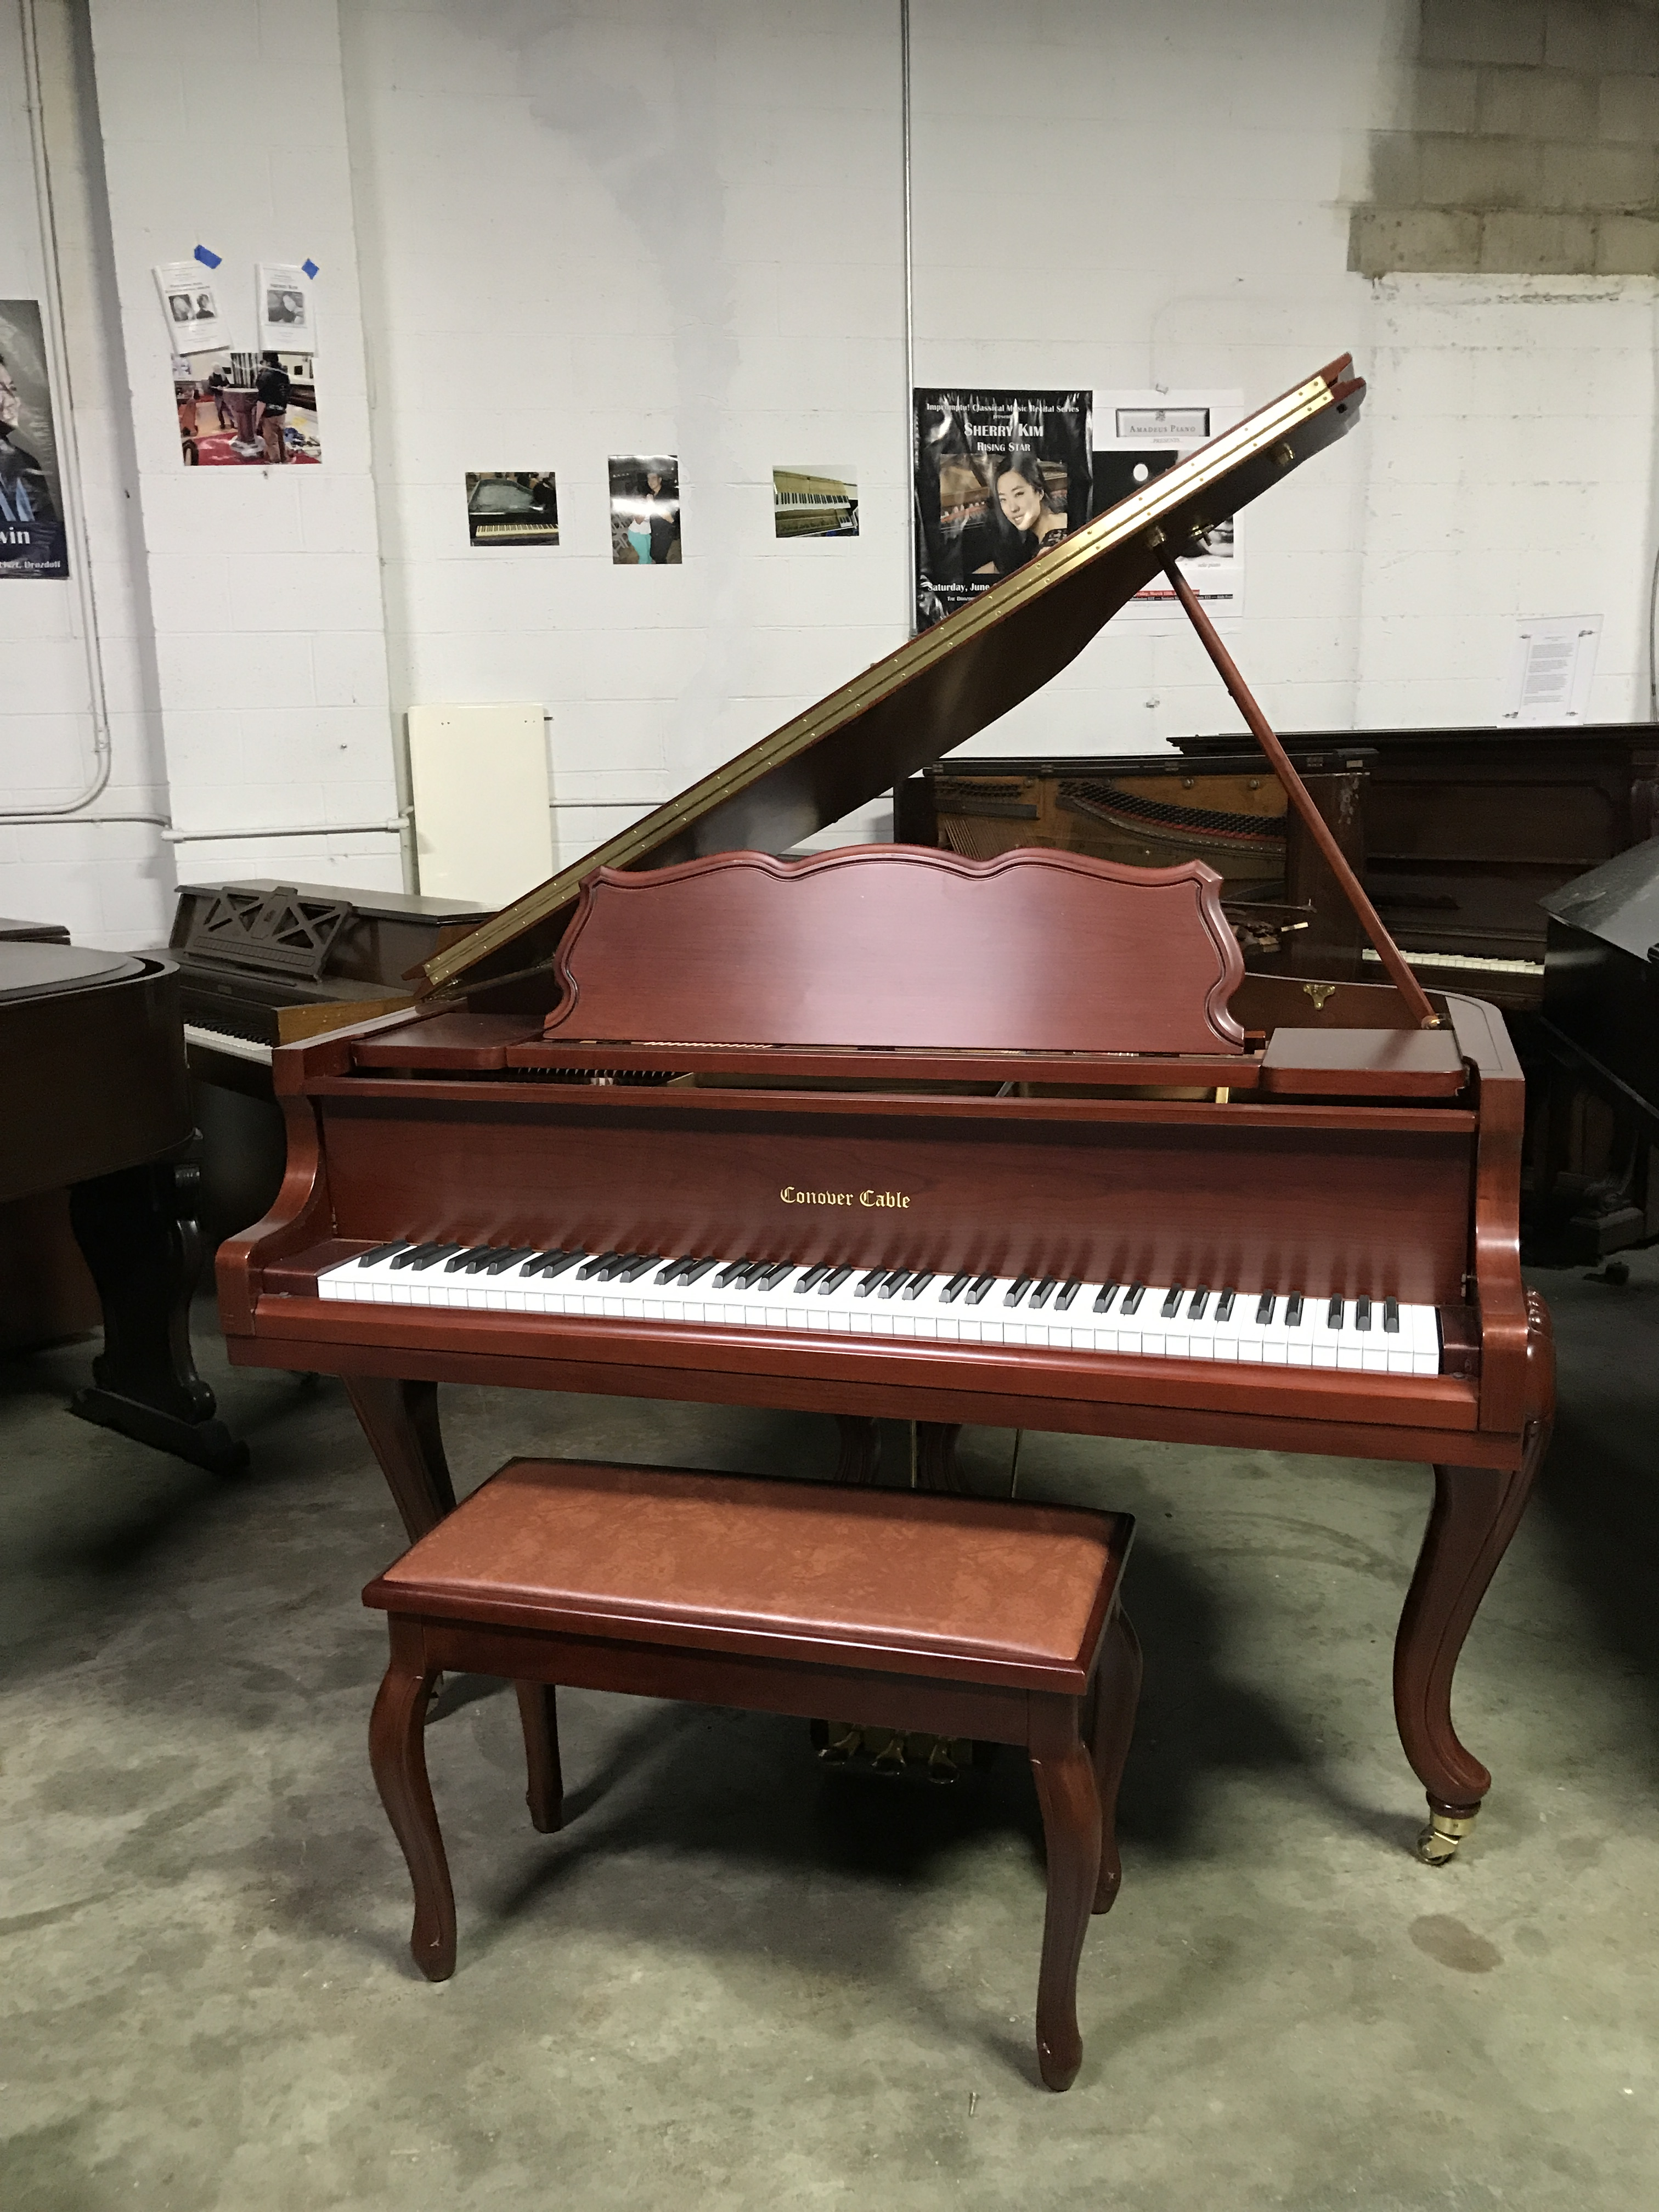 Conover Cable Baby Grand Red Mahogany Pianos For Sale